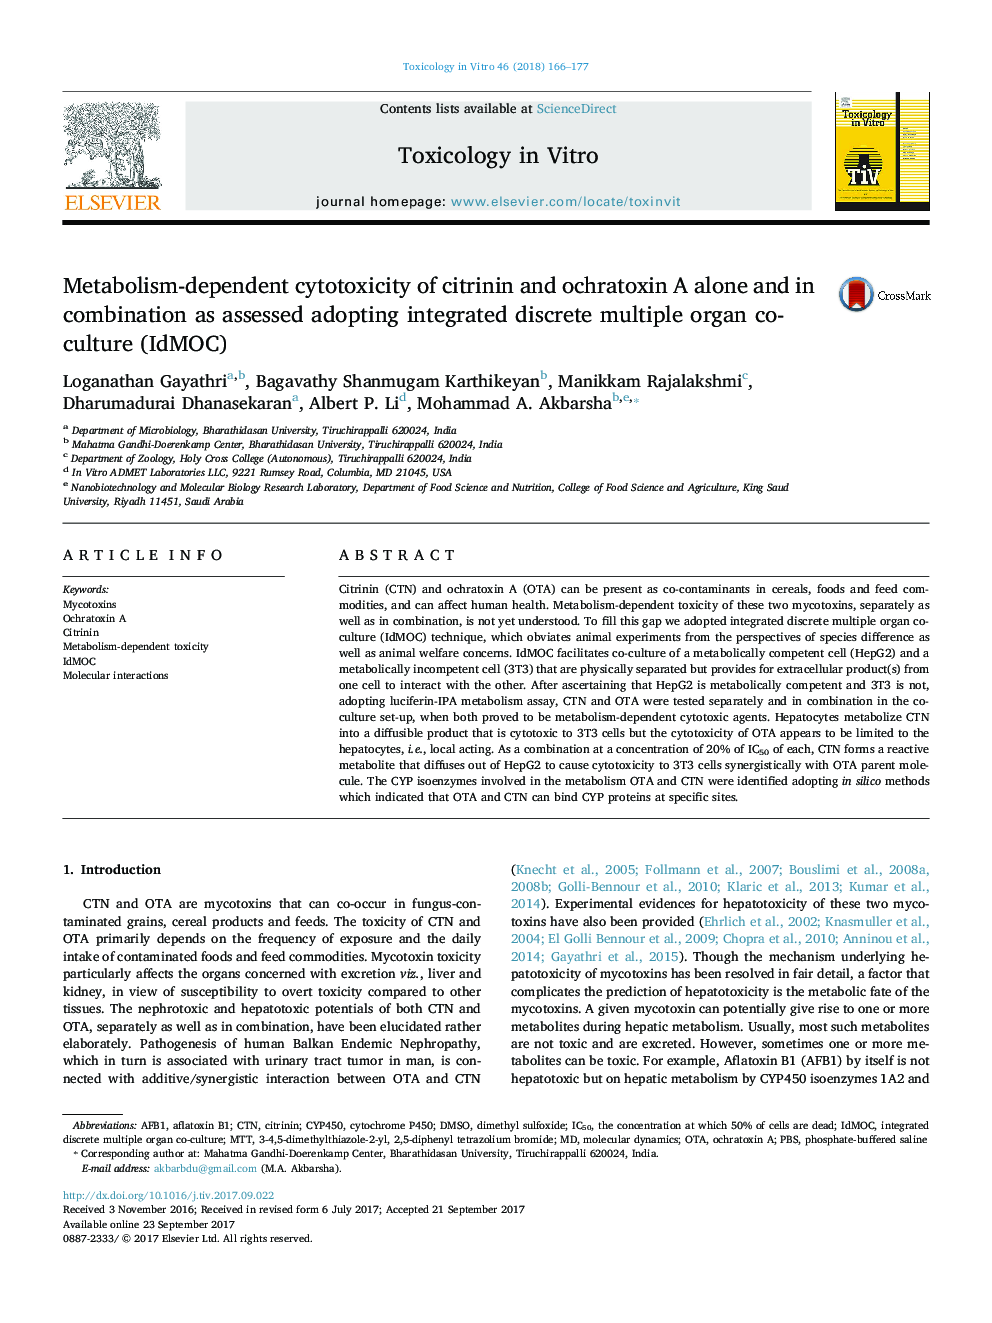 Metabolism-dependent cytotoxicity of citrinin and ochratoxin A alone and in combination as assessed adopting integrated discrete multiple organ co-culture (IdMOC)